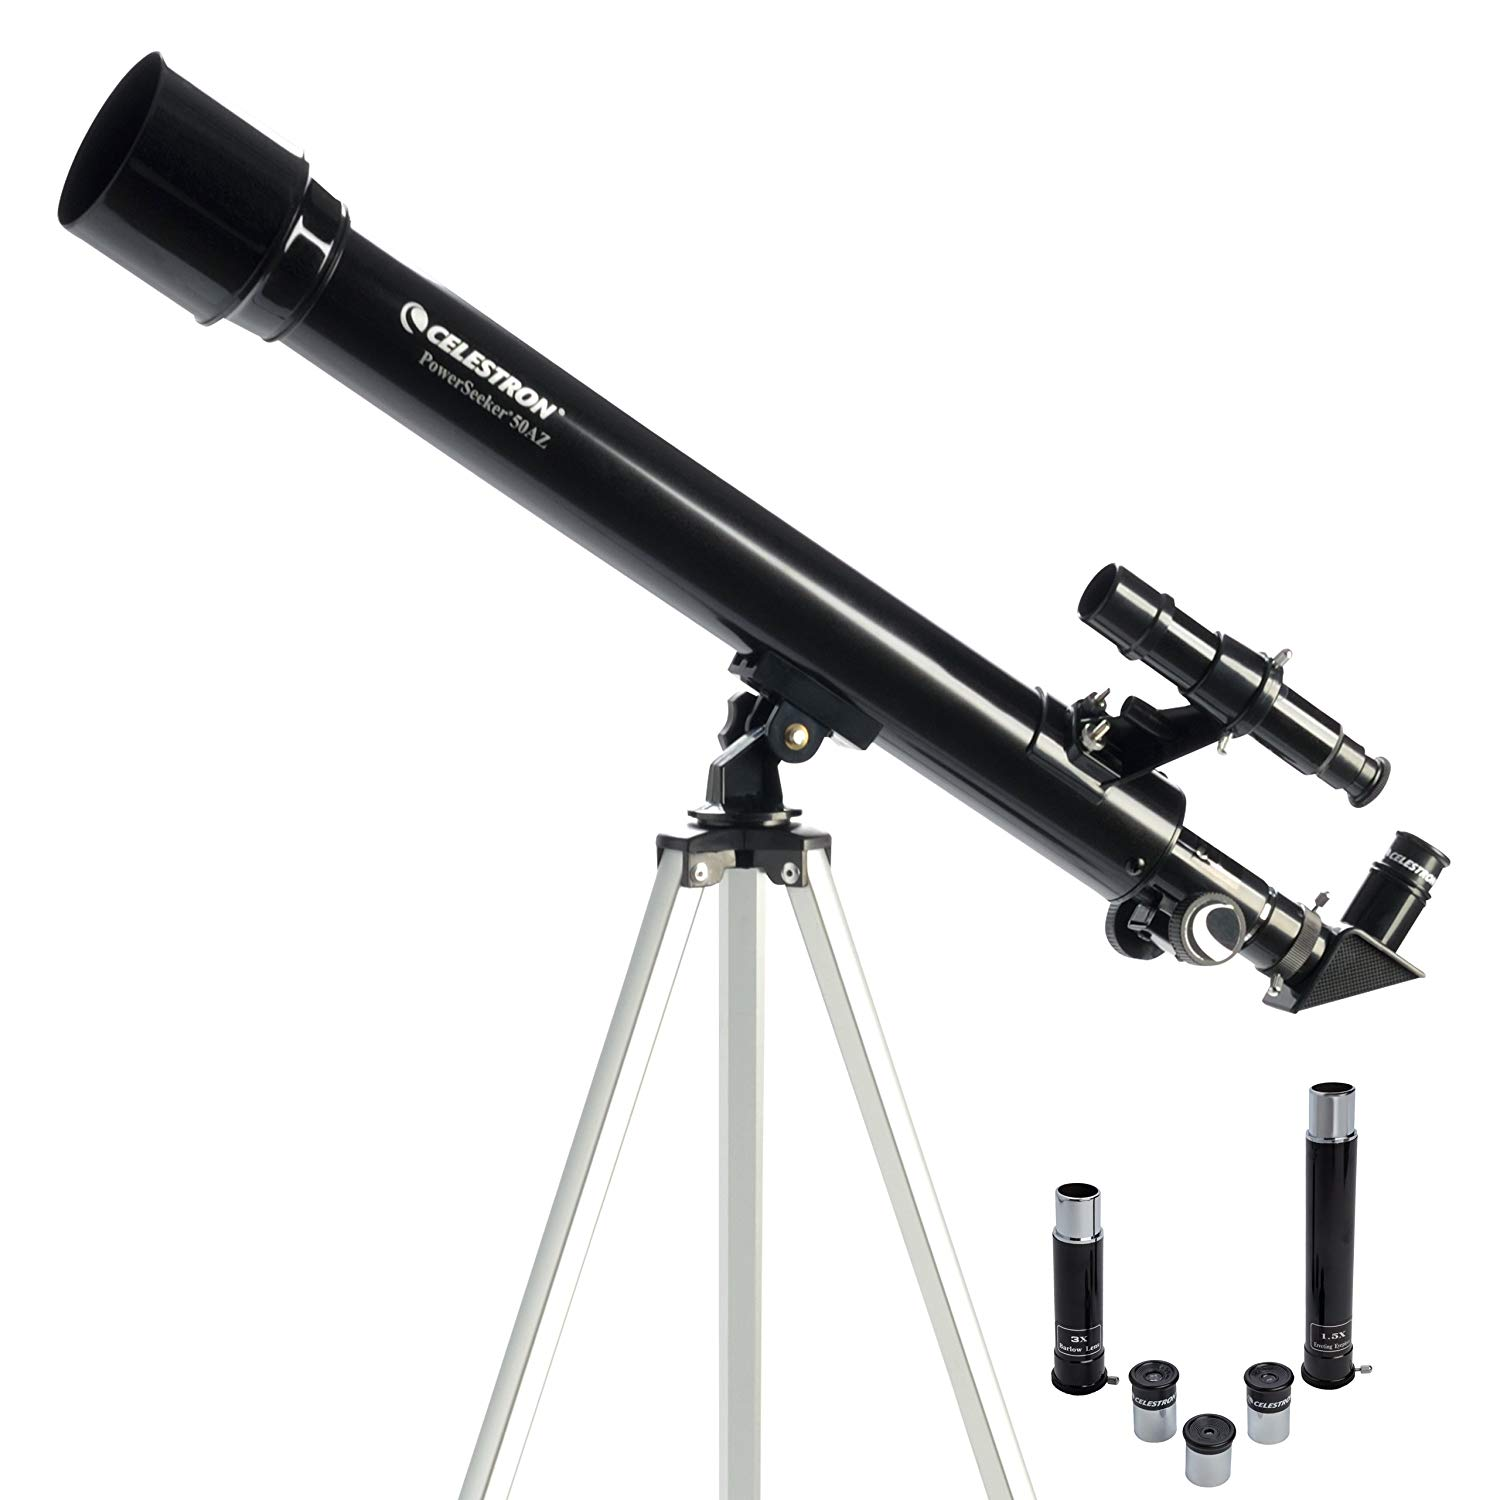 Shoot for the stars with this Celestron PowerSeeker 50 AZ Refractor Telescope $39.99 on Amazon .{ } It's out of this world (had to do it). (Image: Amazon){ }